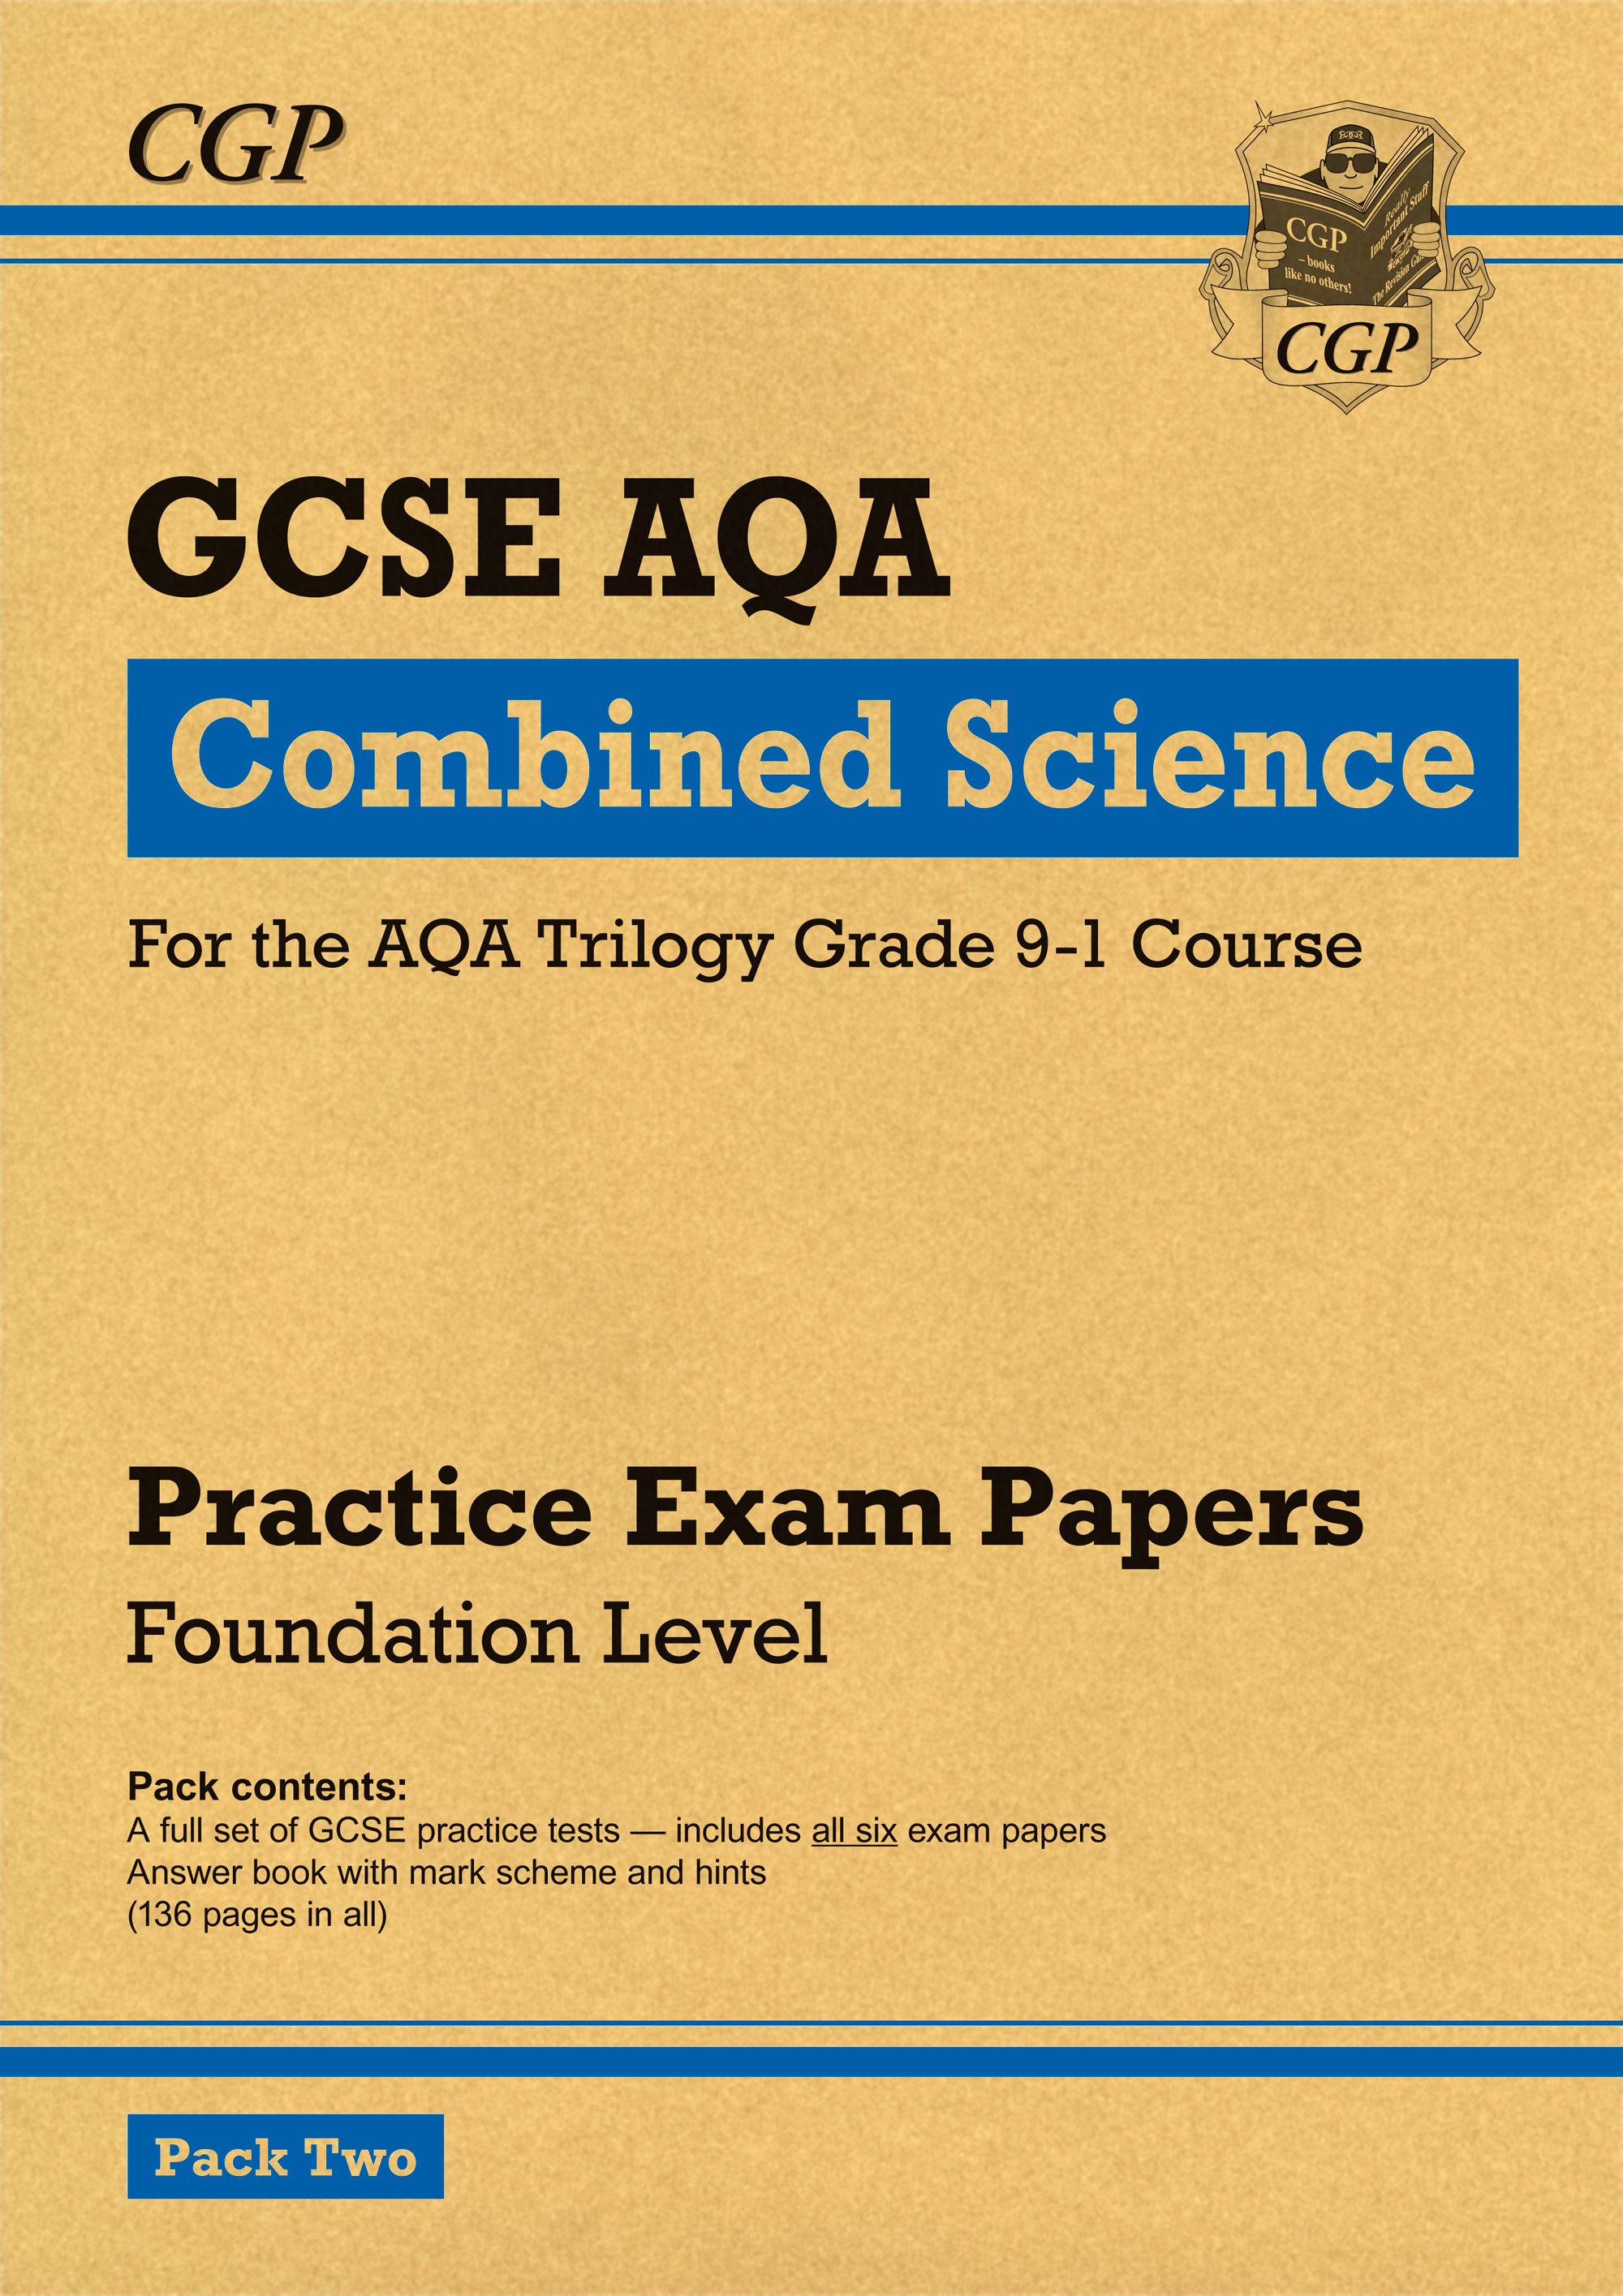 SAFP241 - New Grade 9-1 GCSE Combined Science AQA Practice Papers: Foundation Pack 2